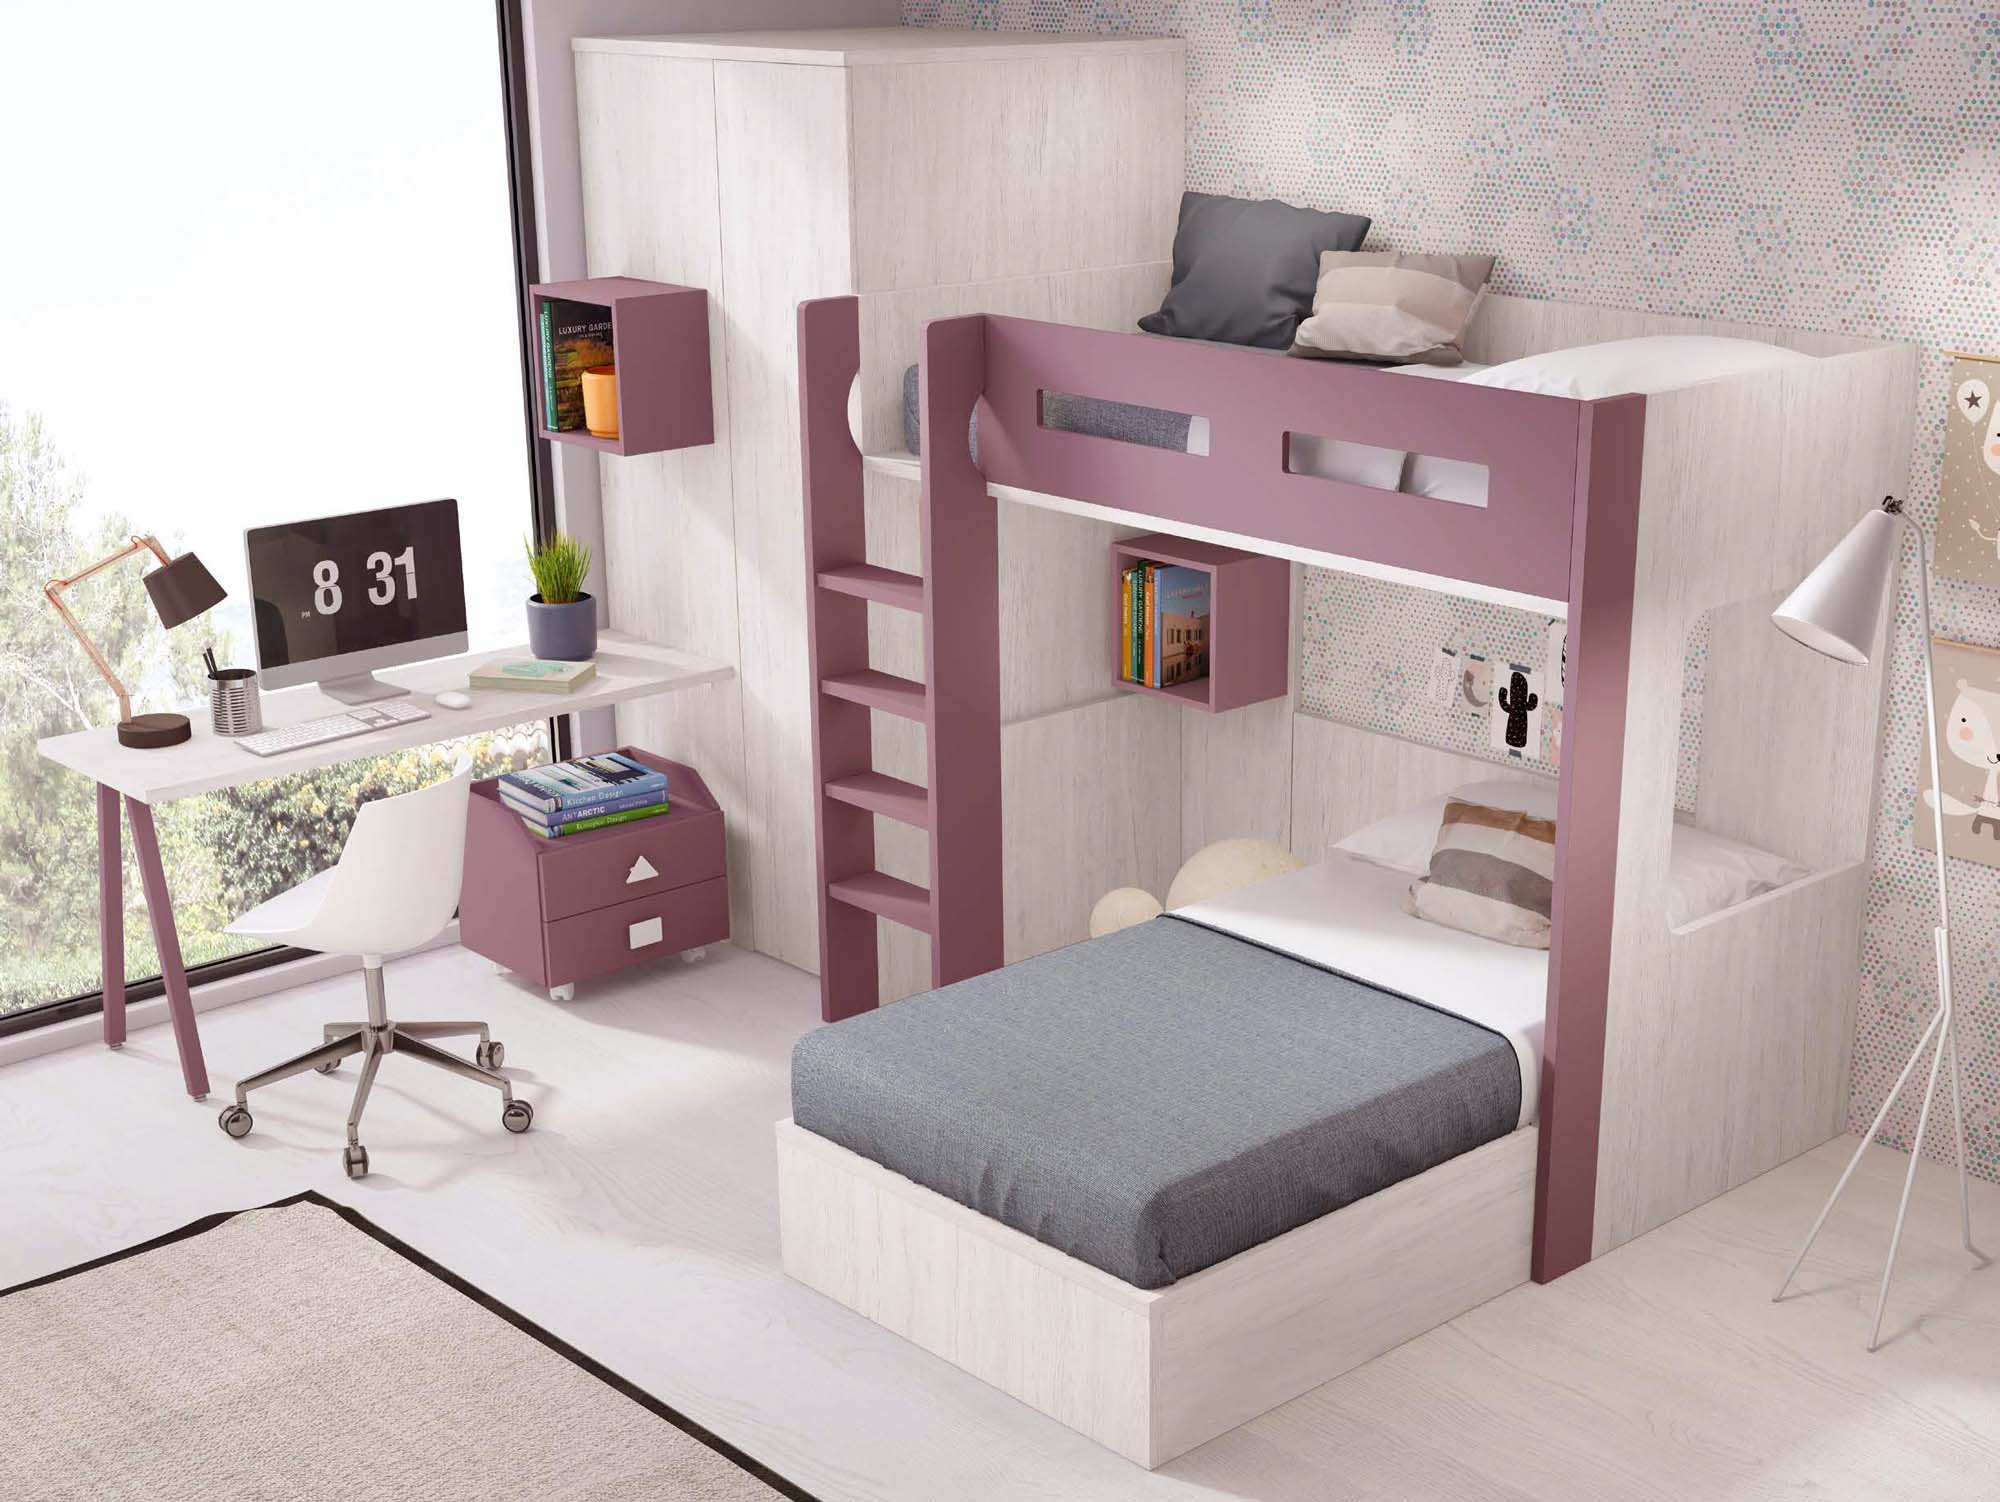 lit superpos s parable avec armoire d 39 angle fun glicerio so nuit. Black Bedroom Furniture Sets. Home Design Ideas